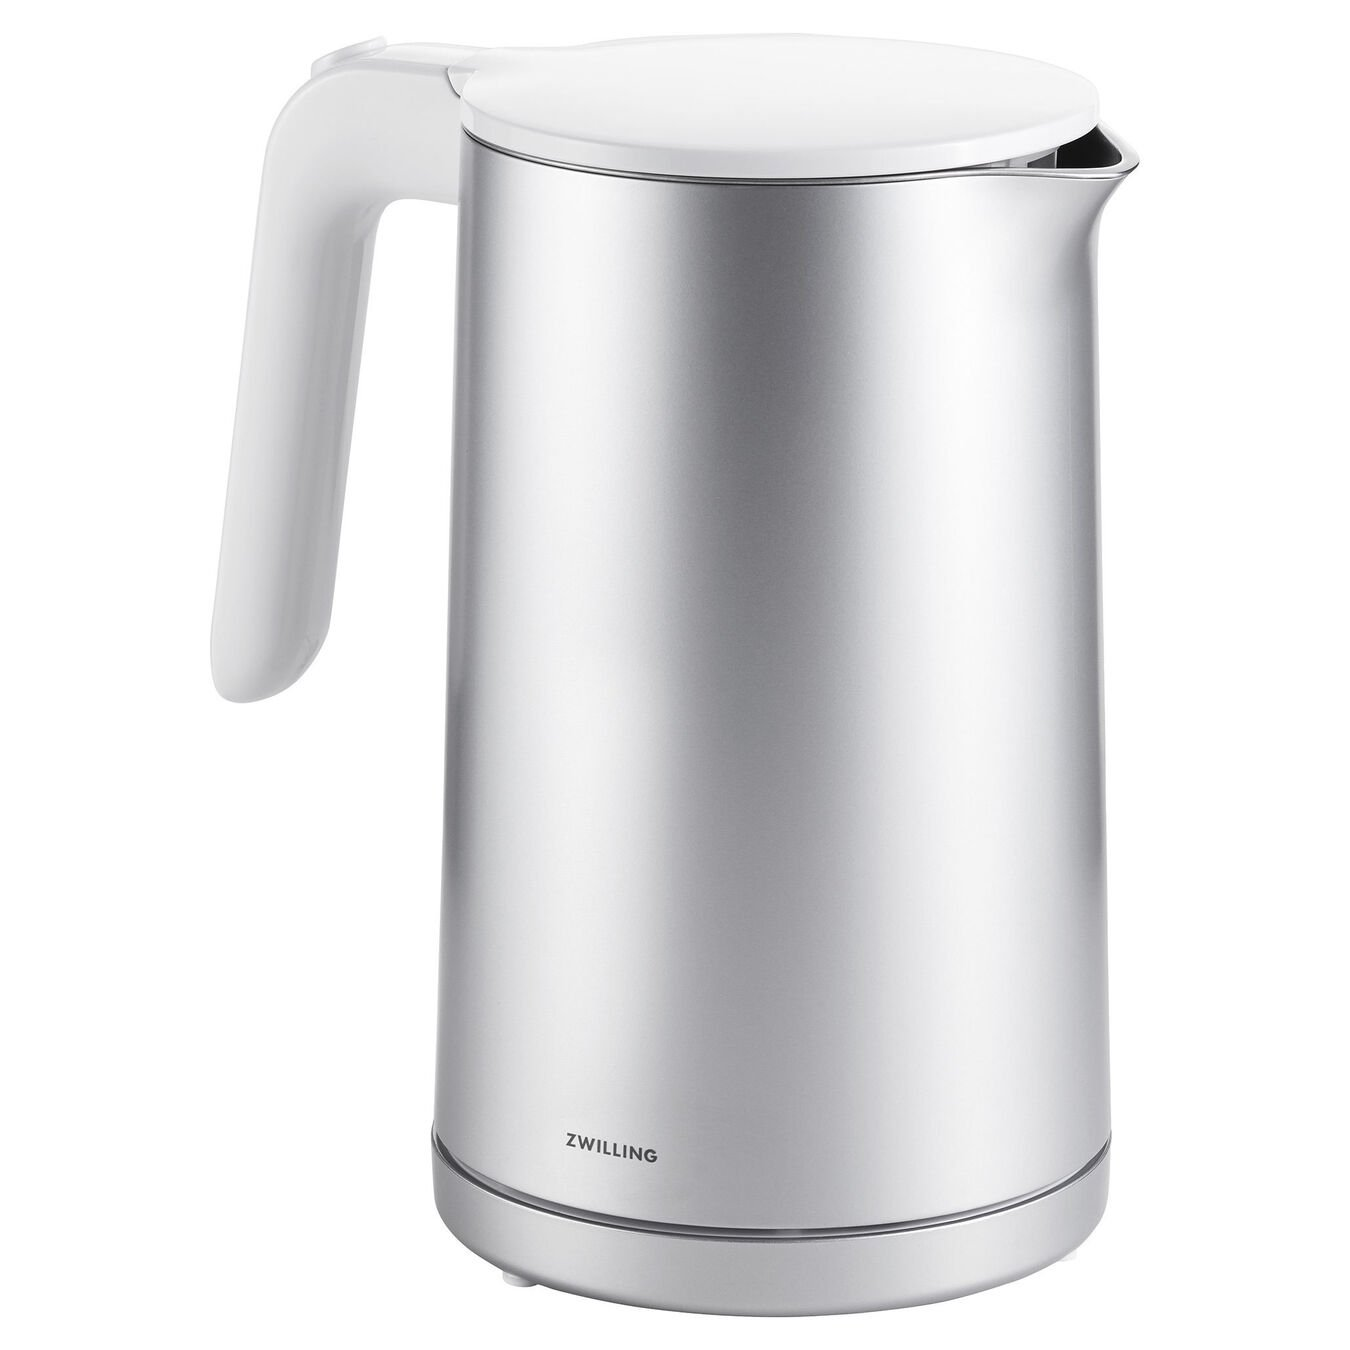 Cool Touch Kettle,,large 1